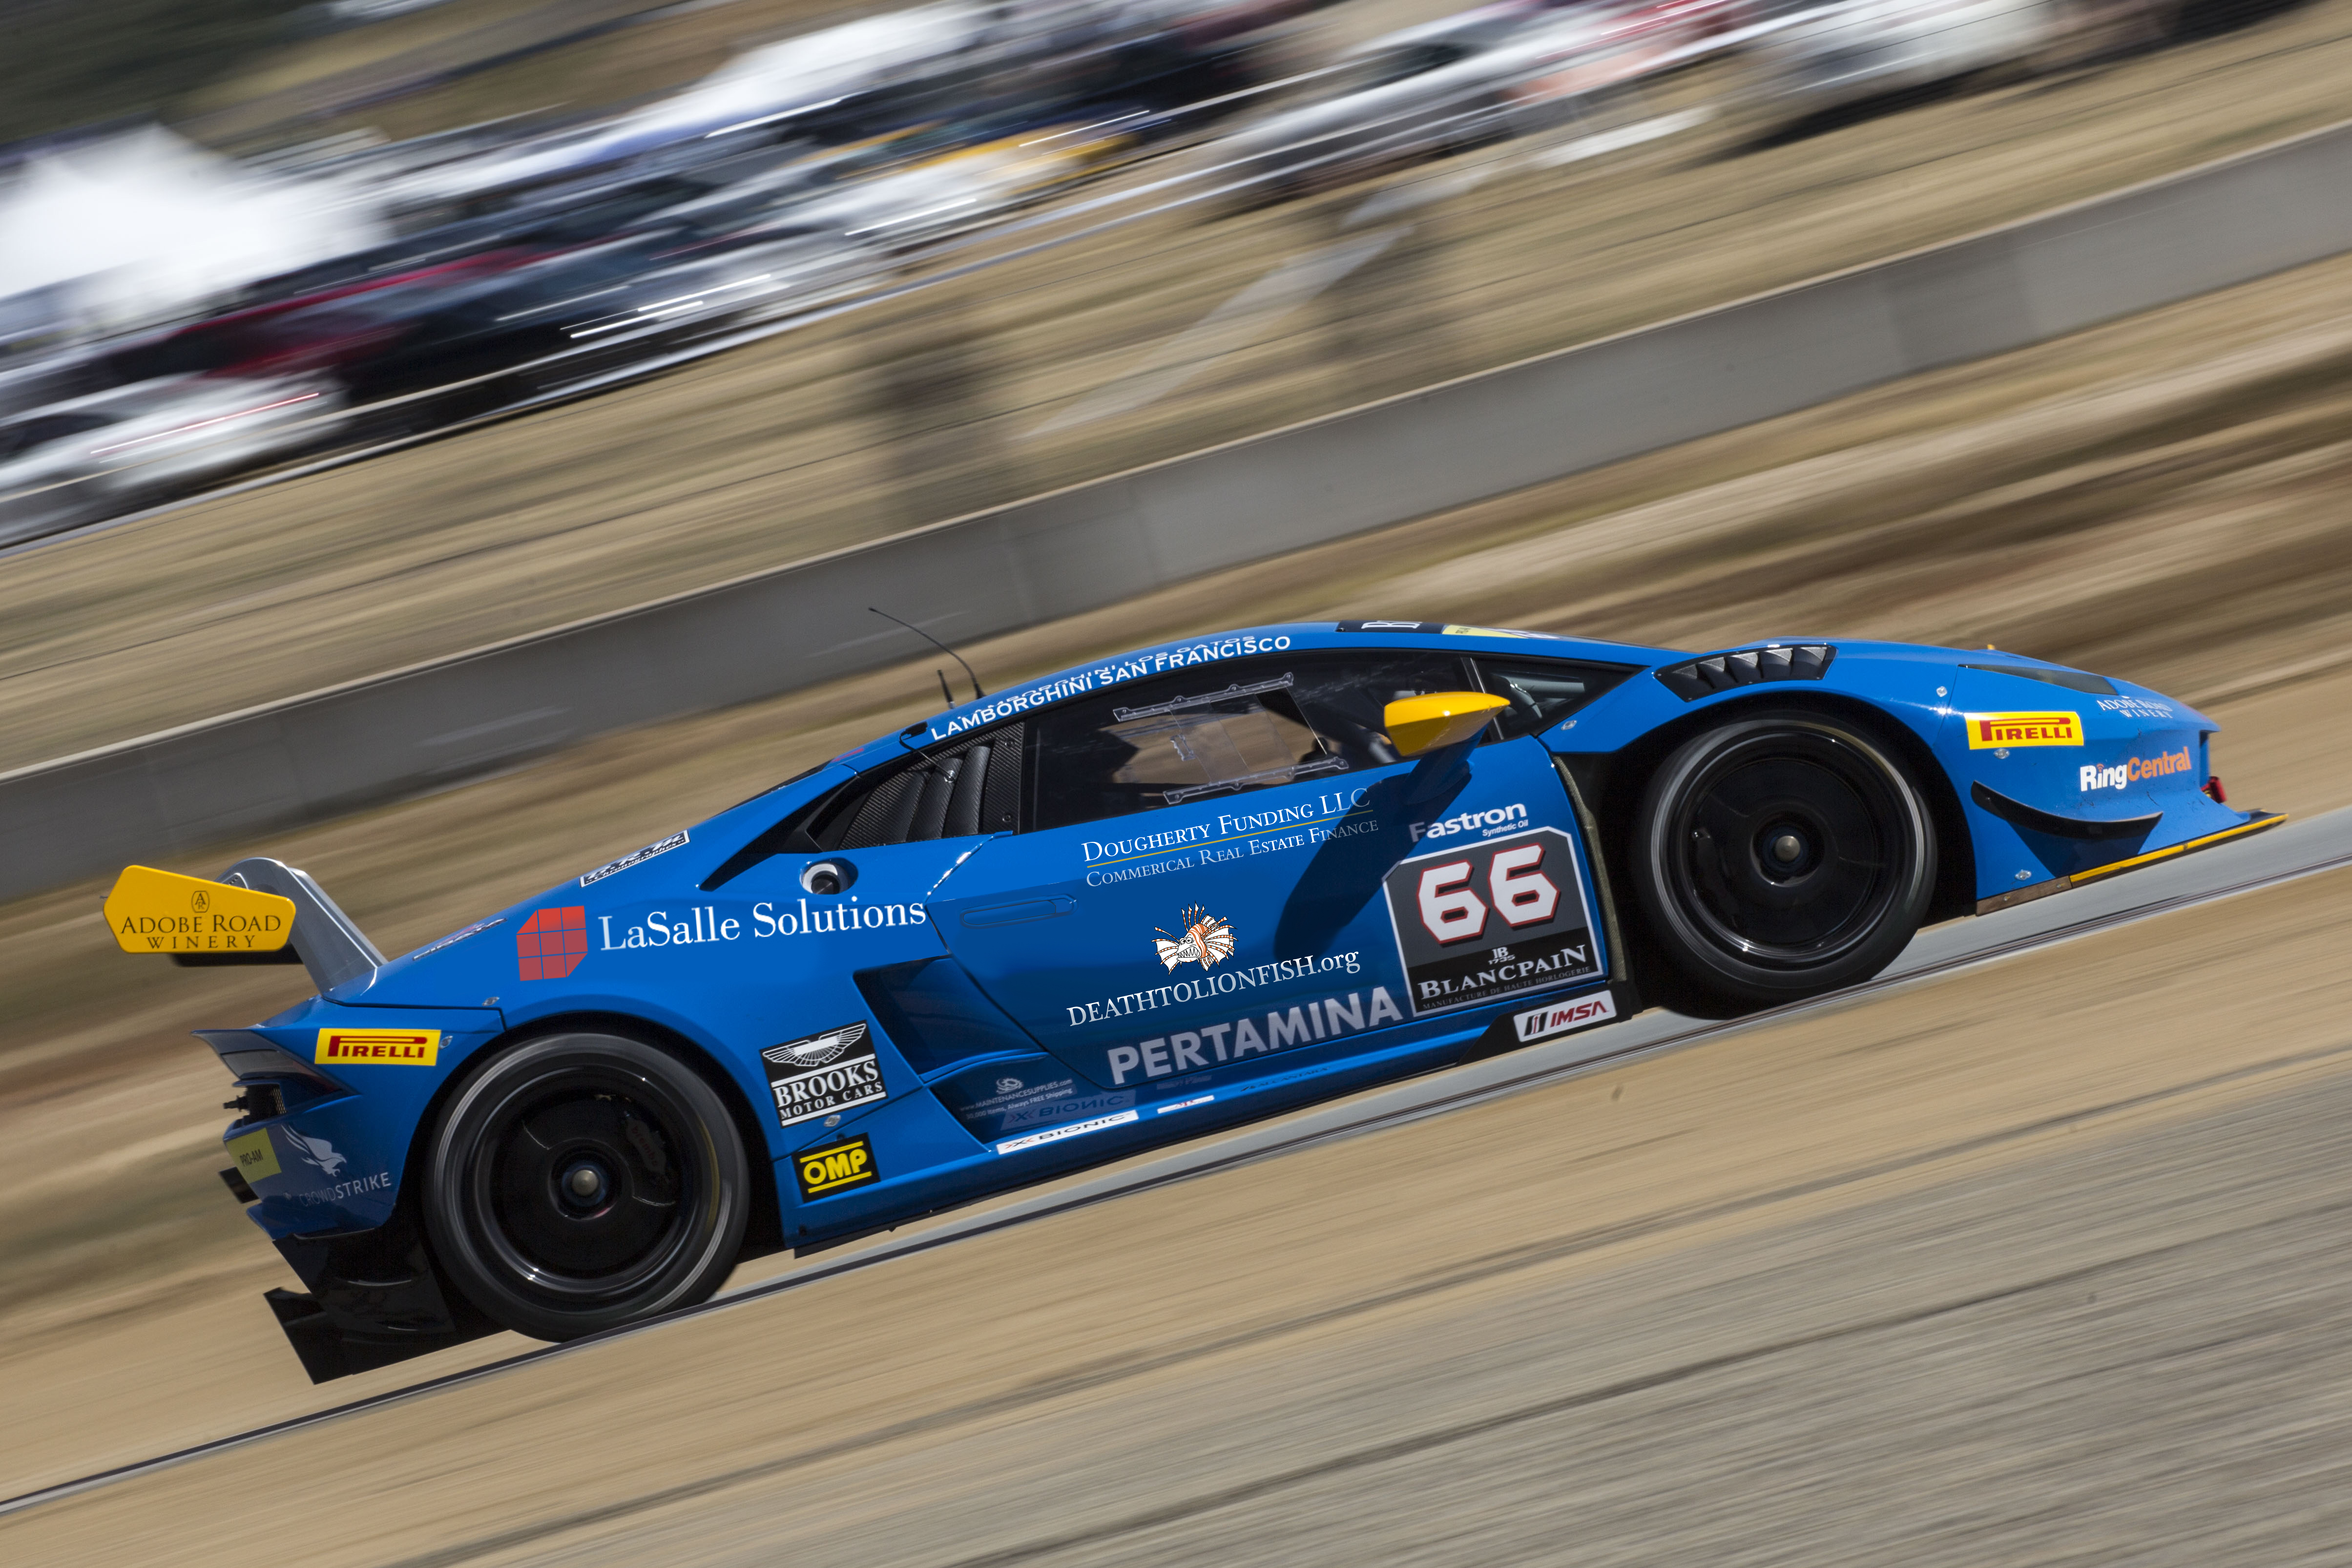 TRG Lamborghini Prepares for Double-Header Race Weekend at Road America